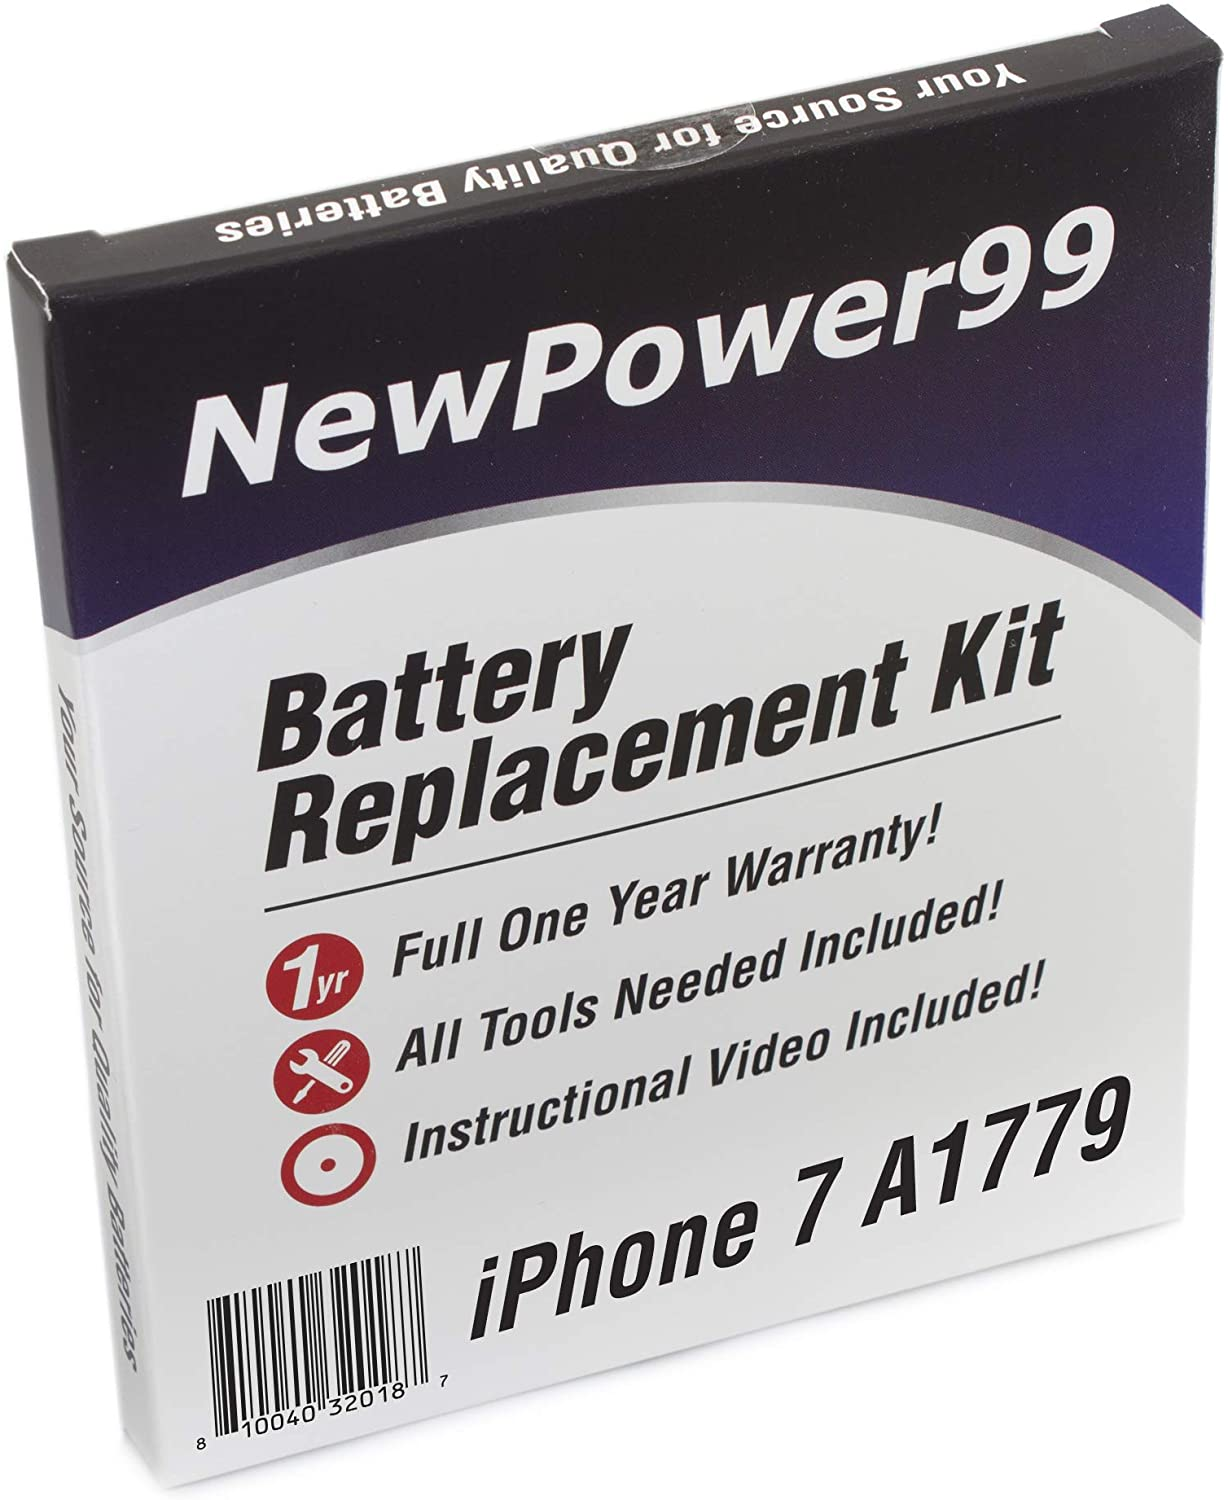 Battery Kit for iPhone 7 A1779 with Battery, Video and Tools from NewPower99